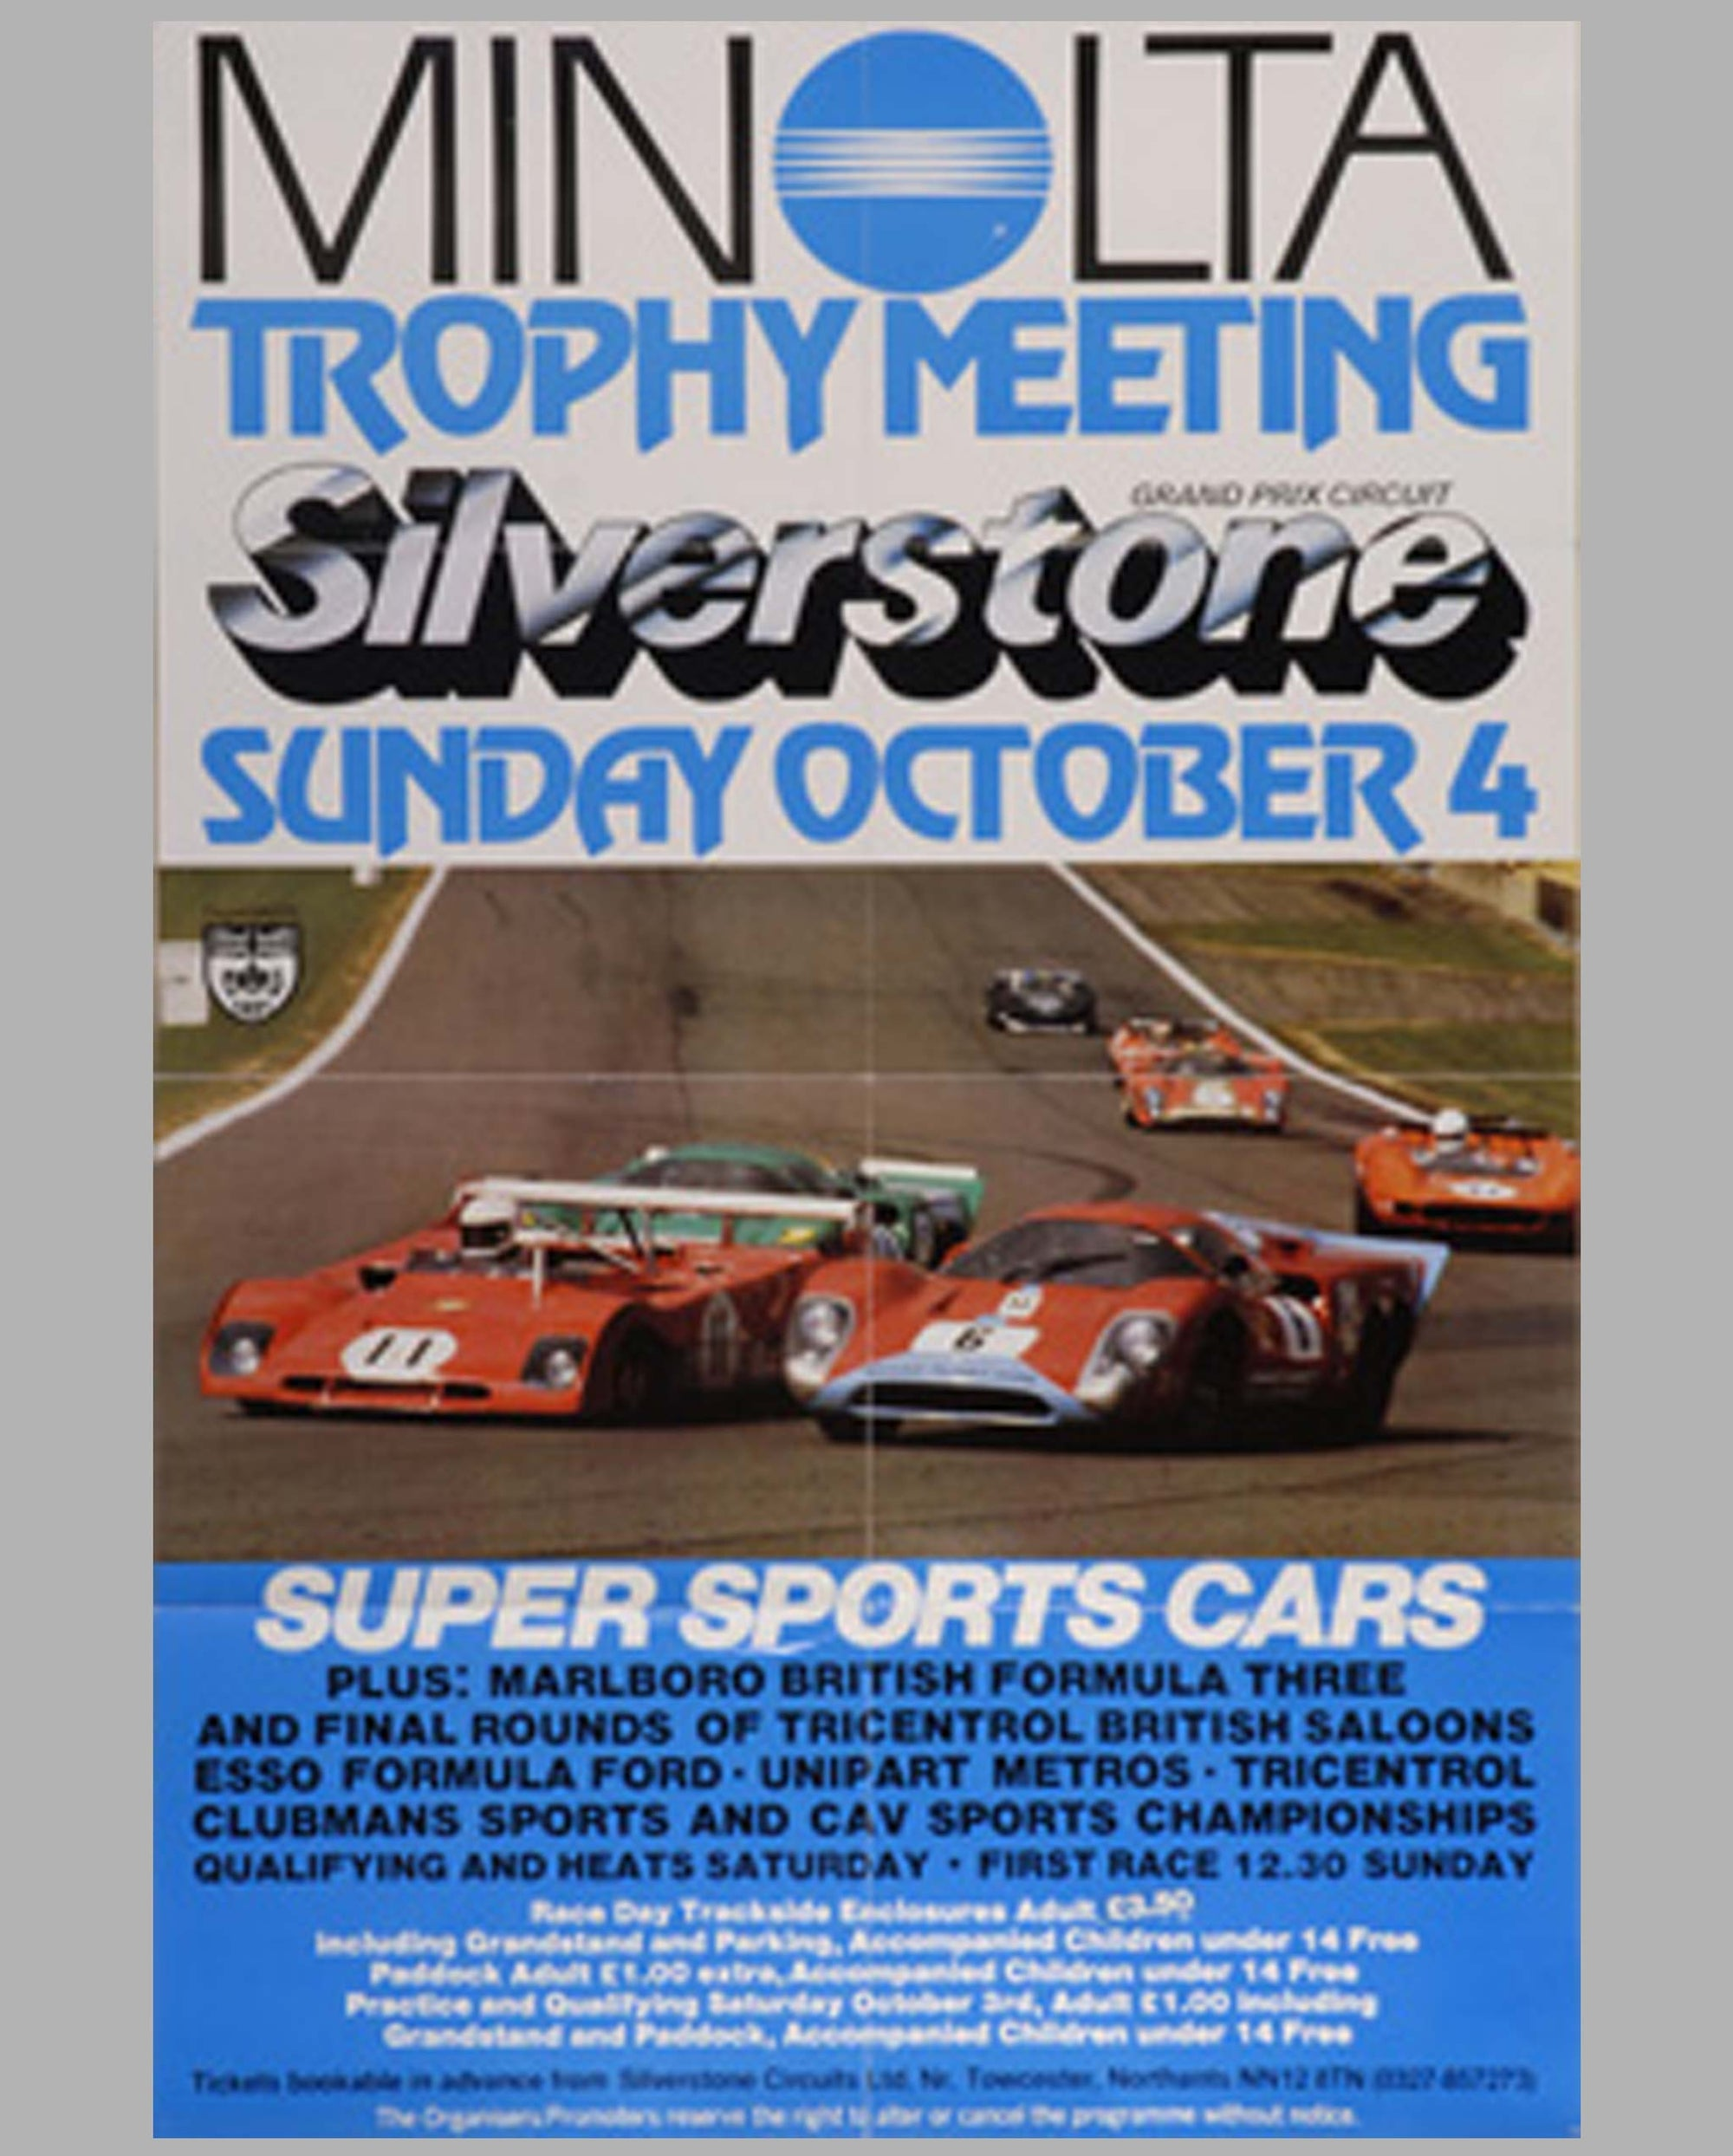 1970 Minolta Trophy Meeting-Silverstone original poster